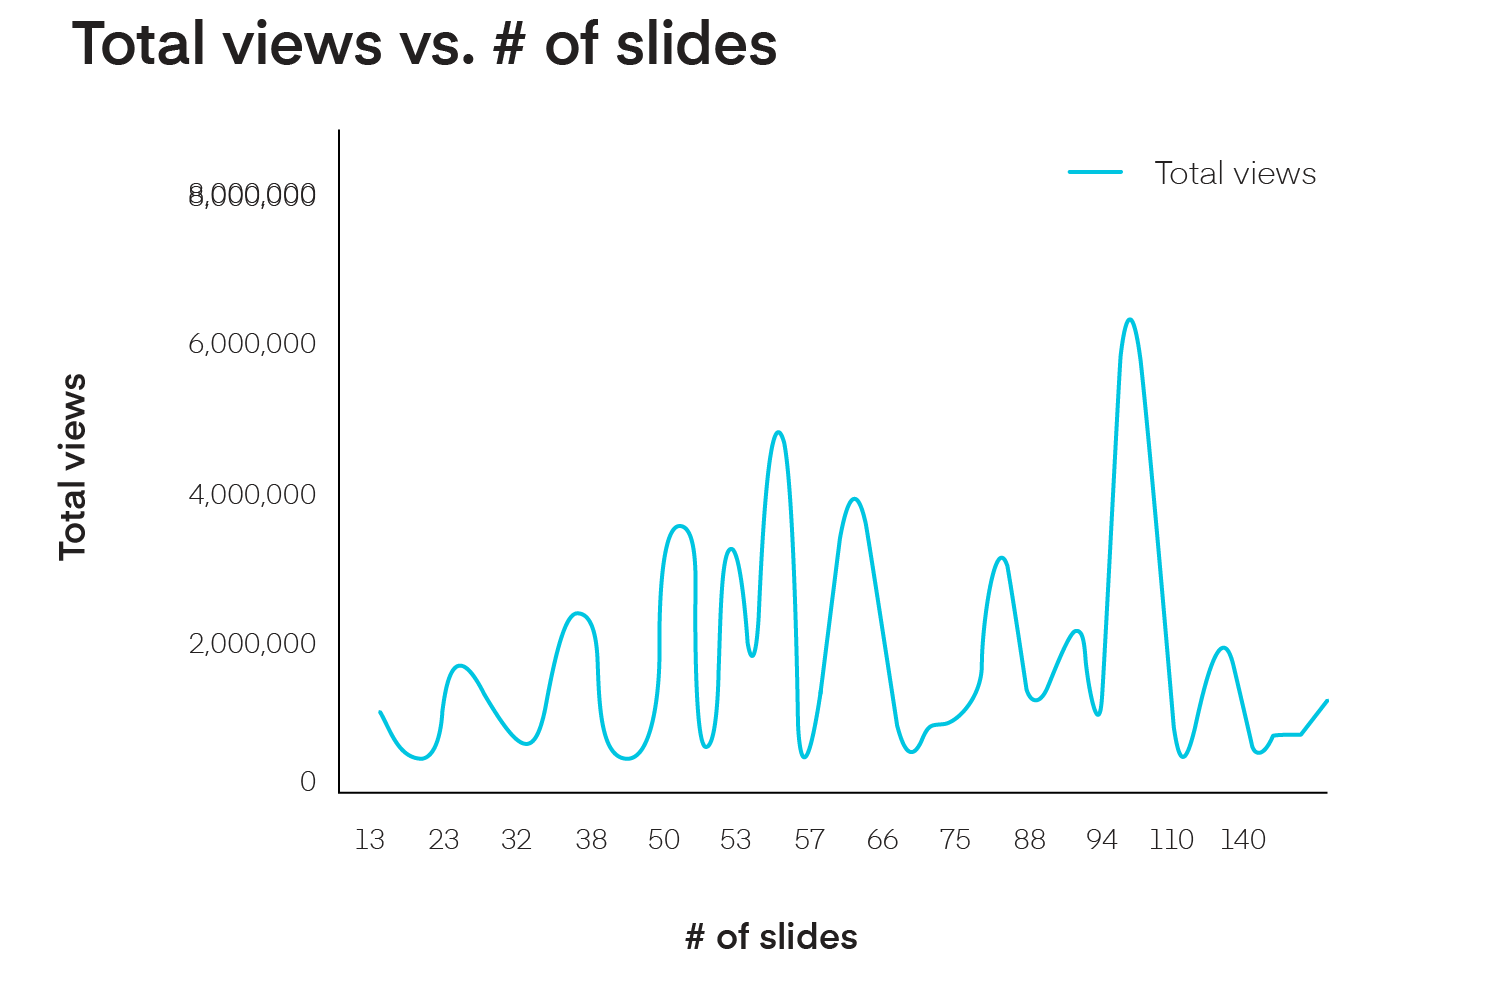 Average number of slides vs views